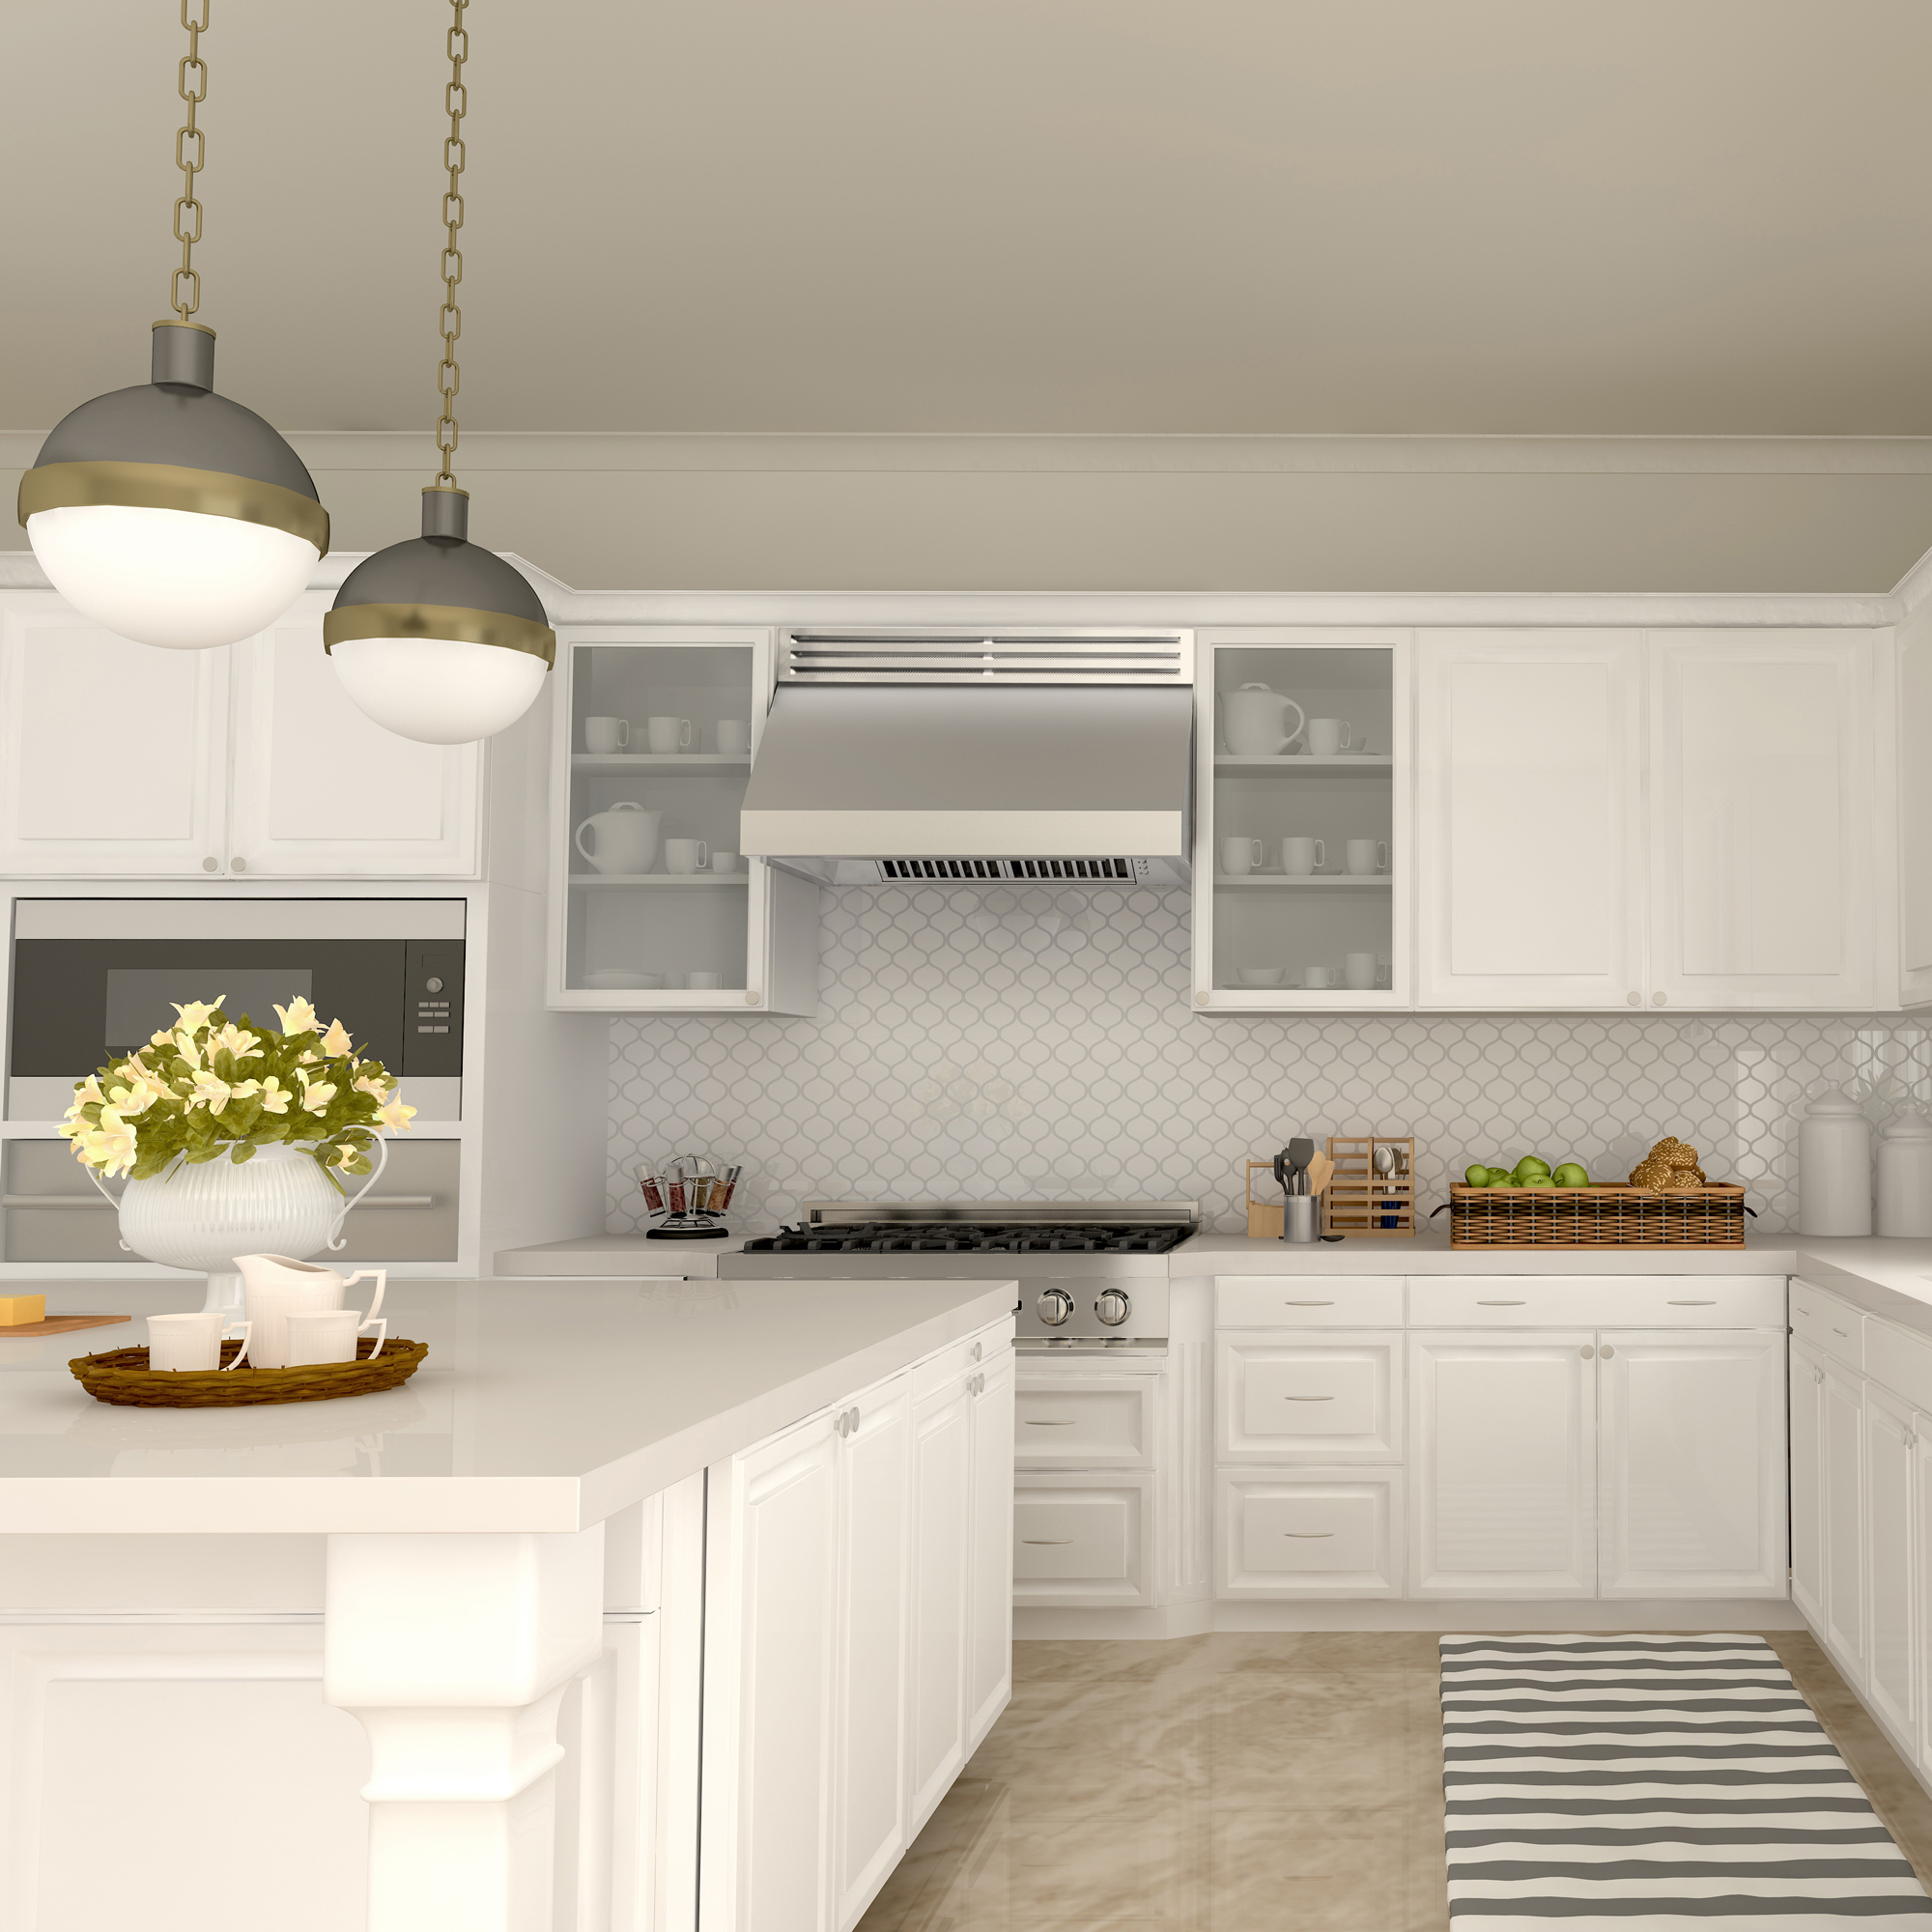 zline-stainless-steel-under-cabinet-range-hood-523-kitchen-rk.jpg